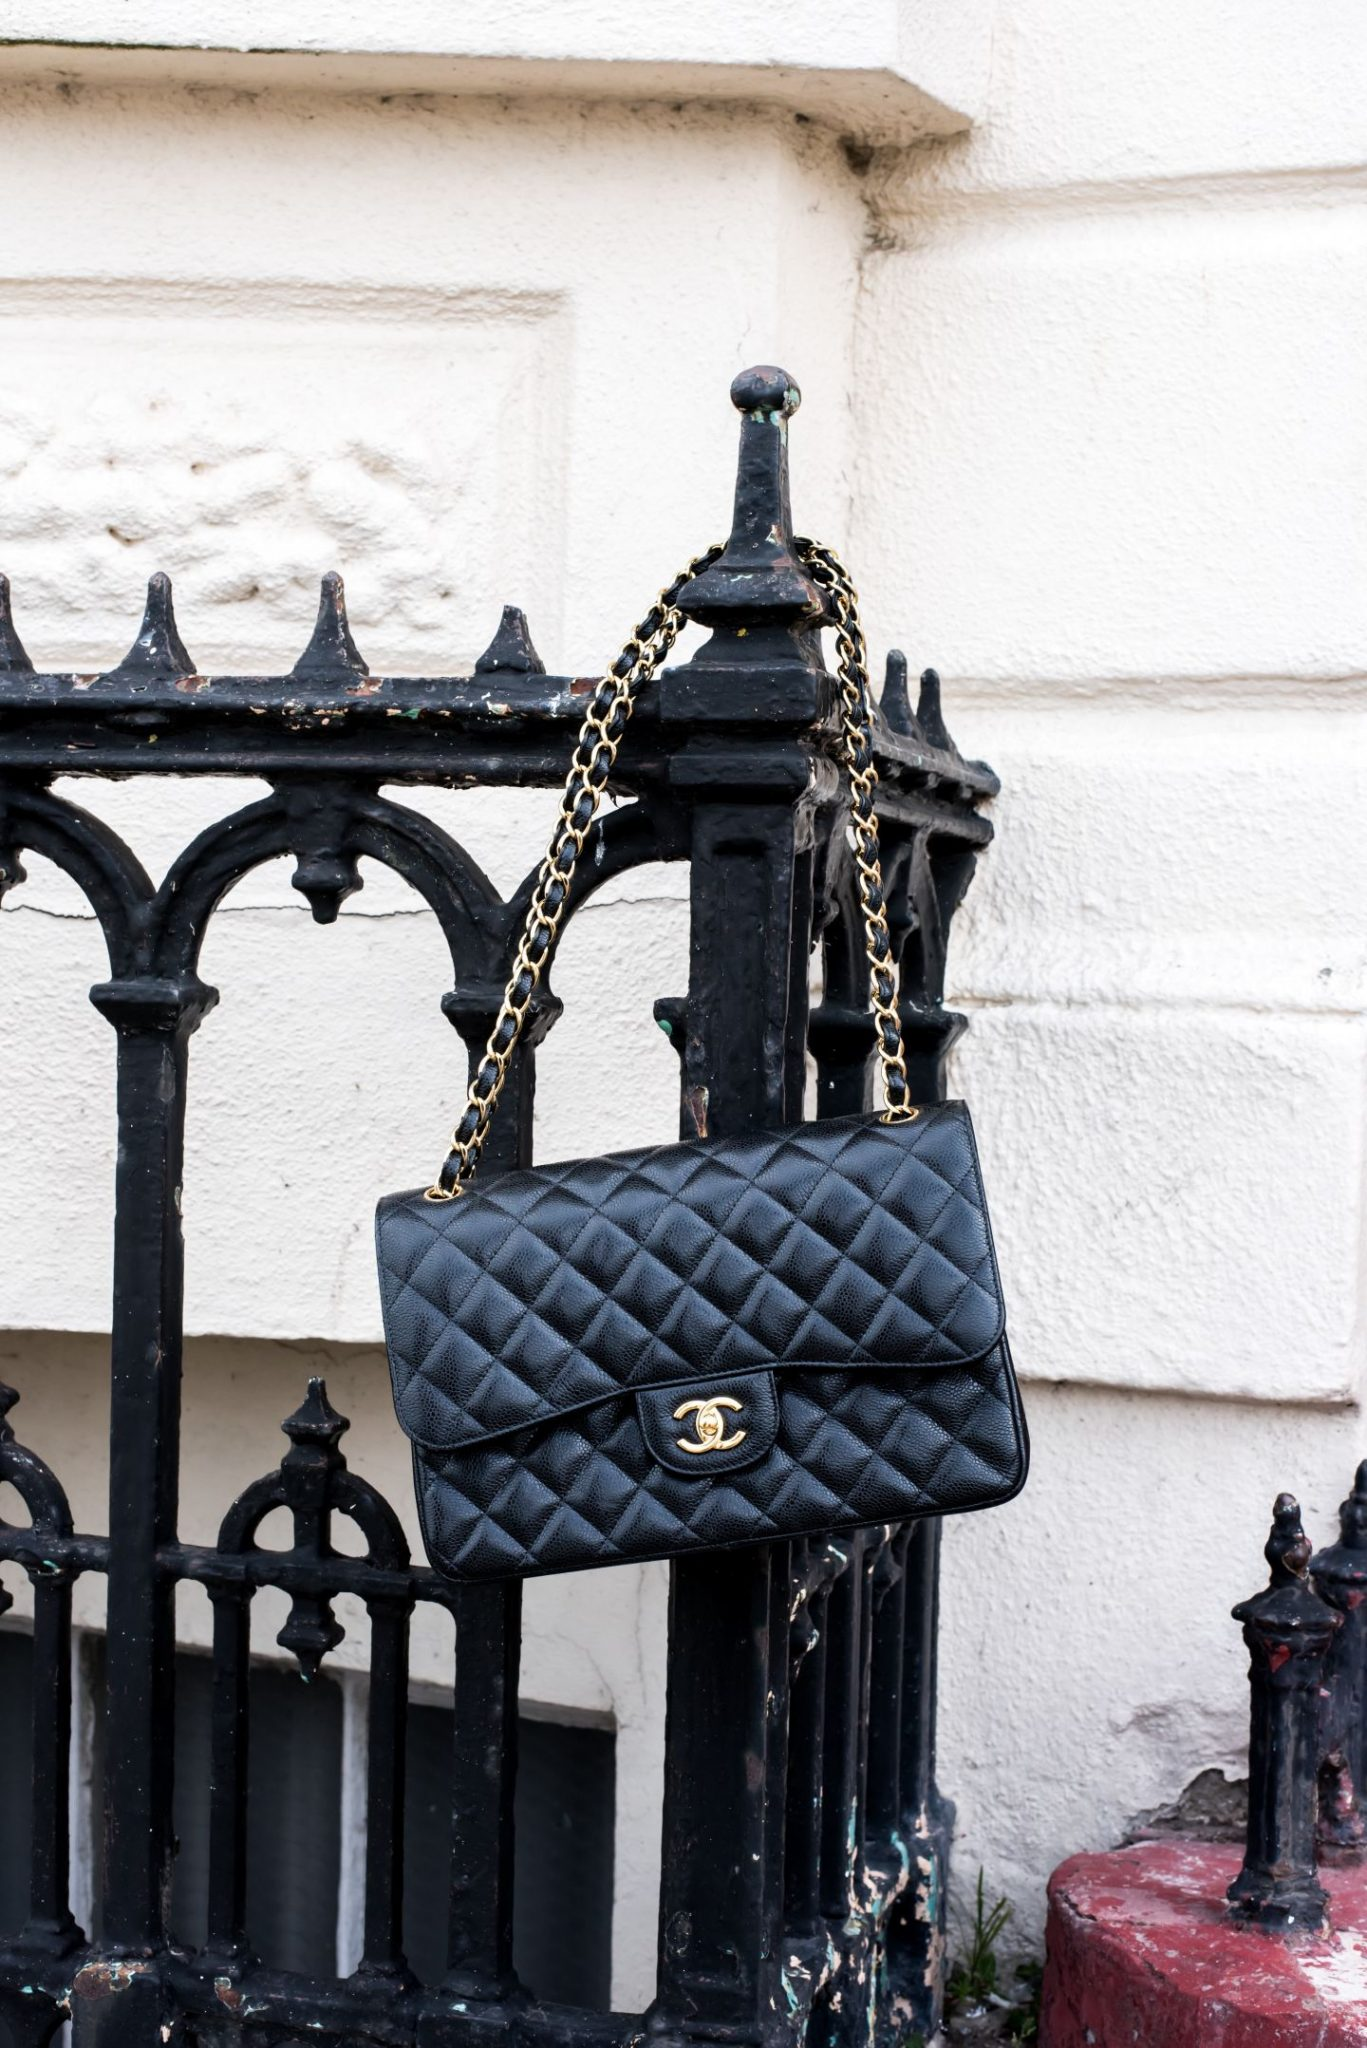 What is the proper way to store handbags?